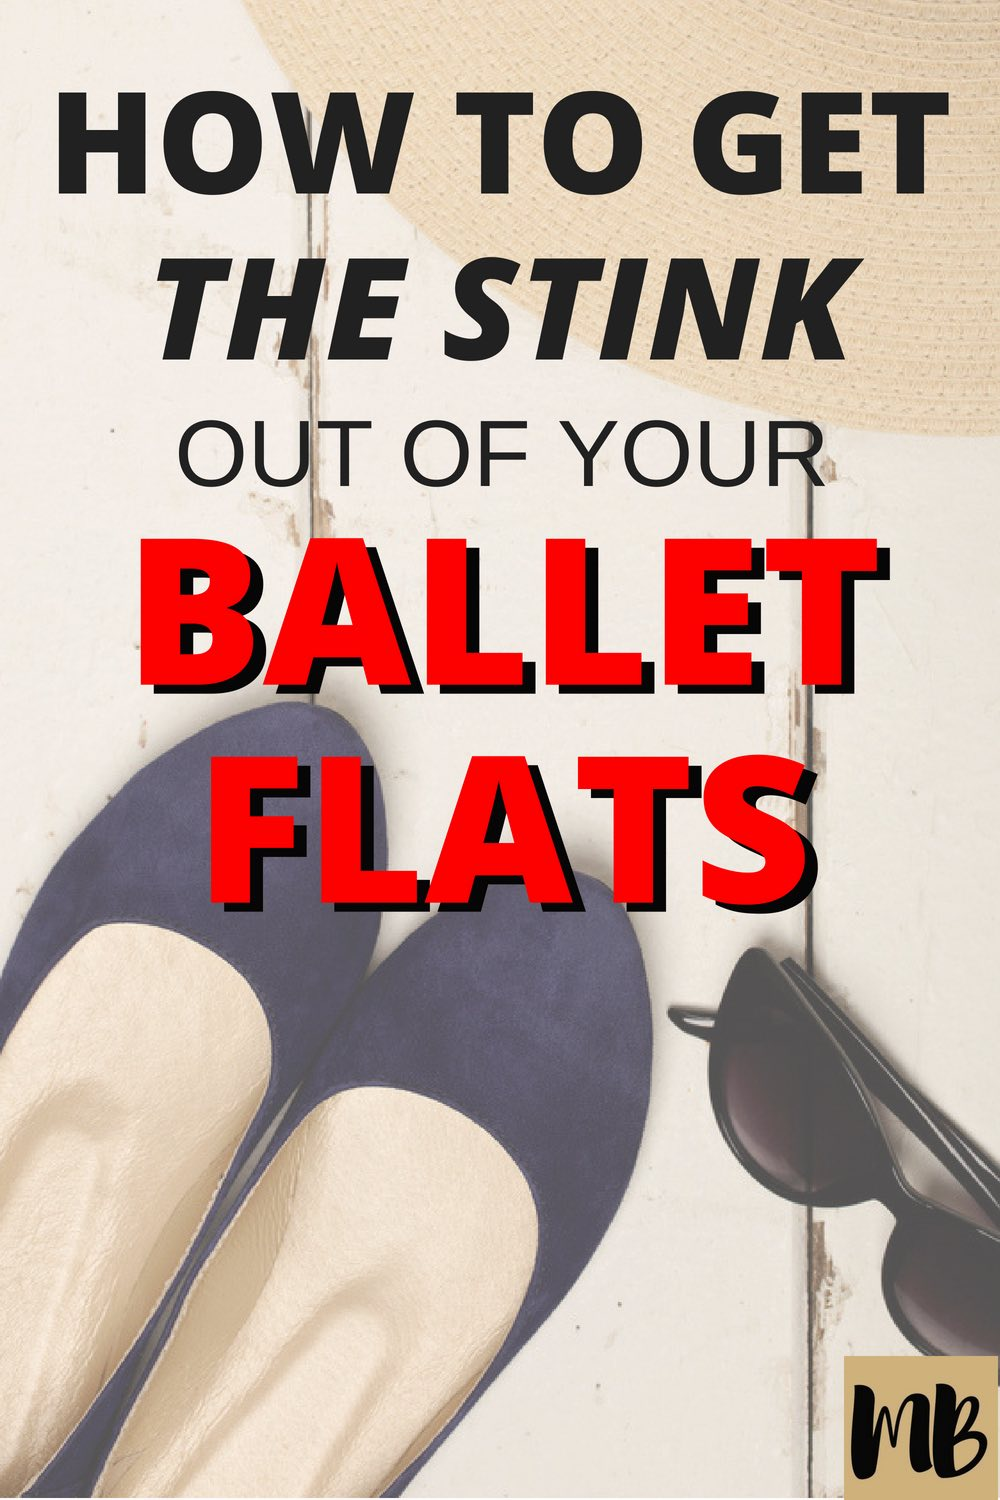 Get the stink out of your ballet flats with these tips